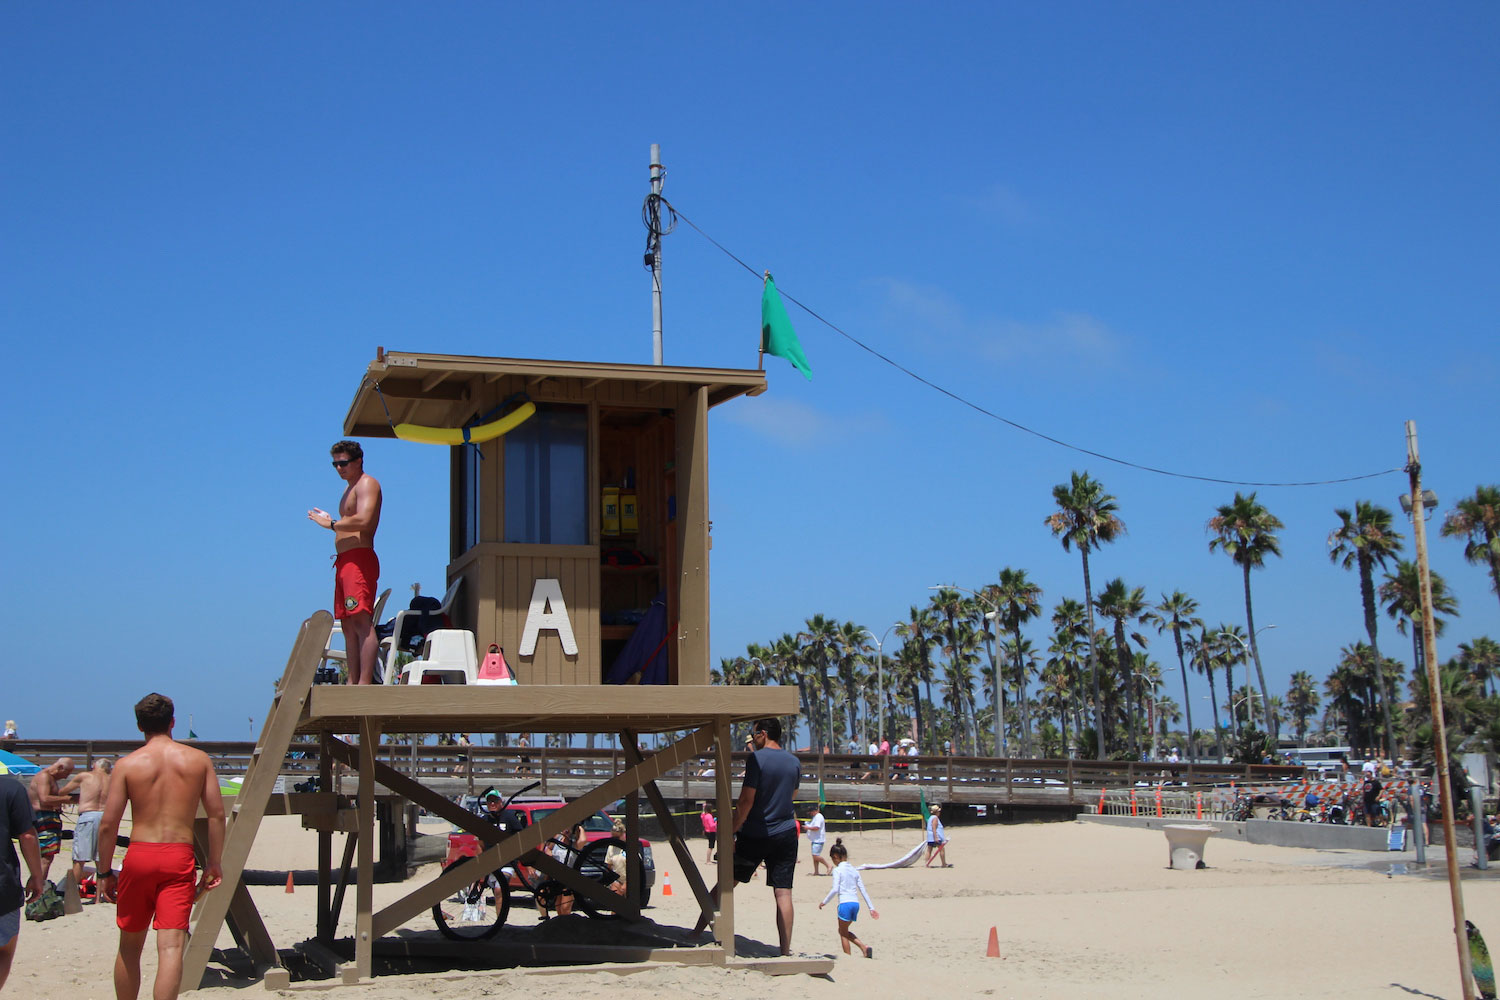 Police Files Lifeguard Tower 1.21.20